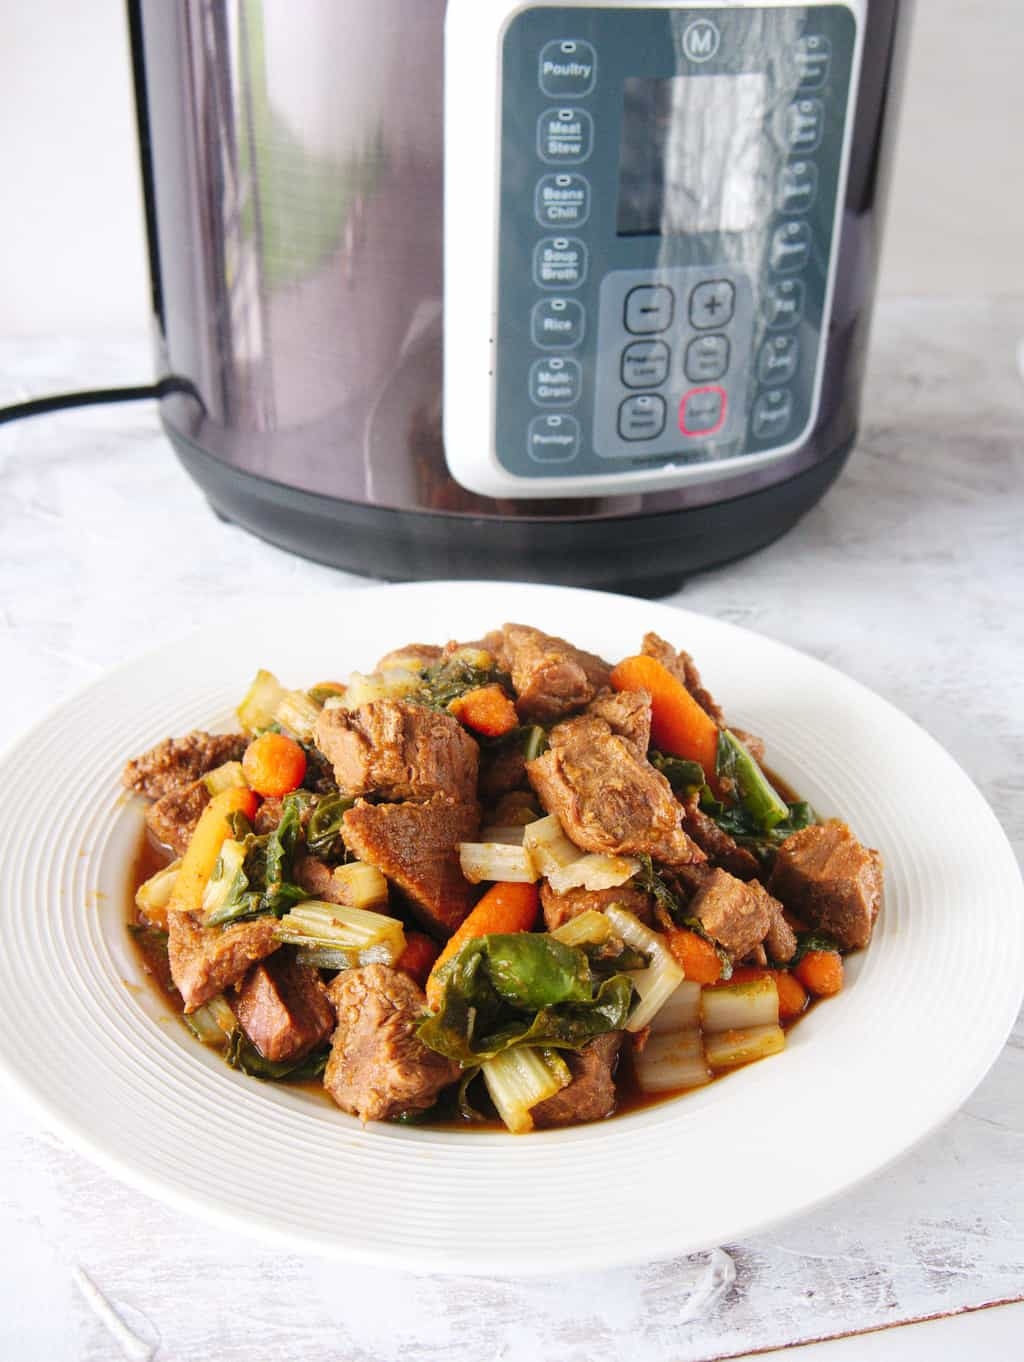 Finished beef stew recipe with the Instant Pot in the background.